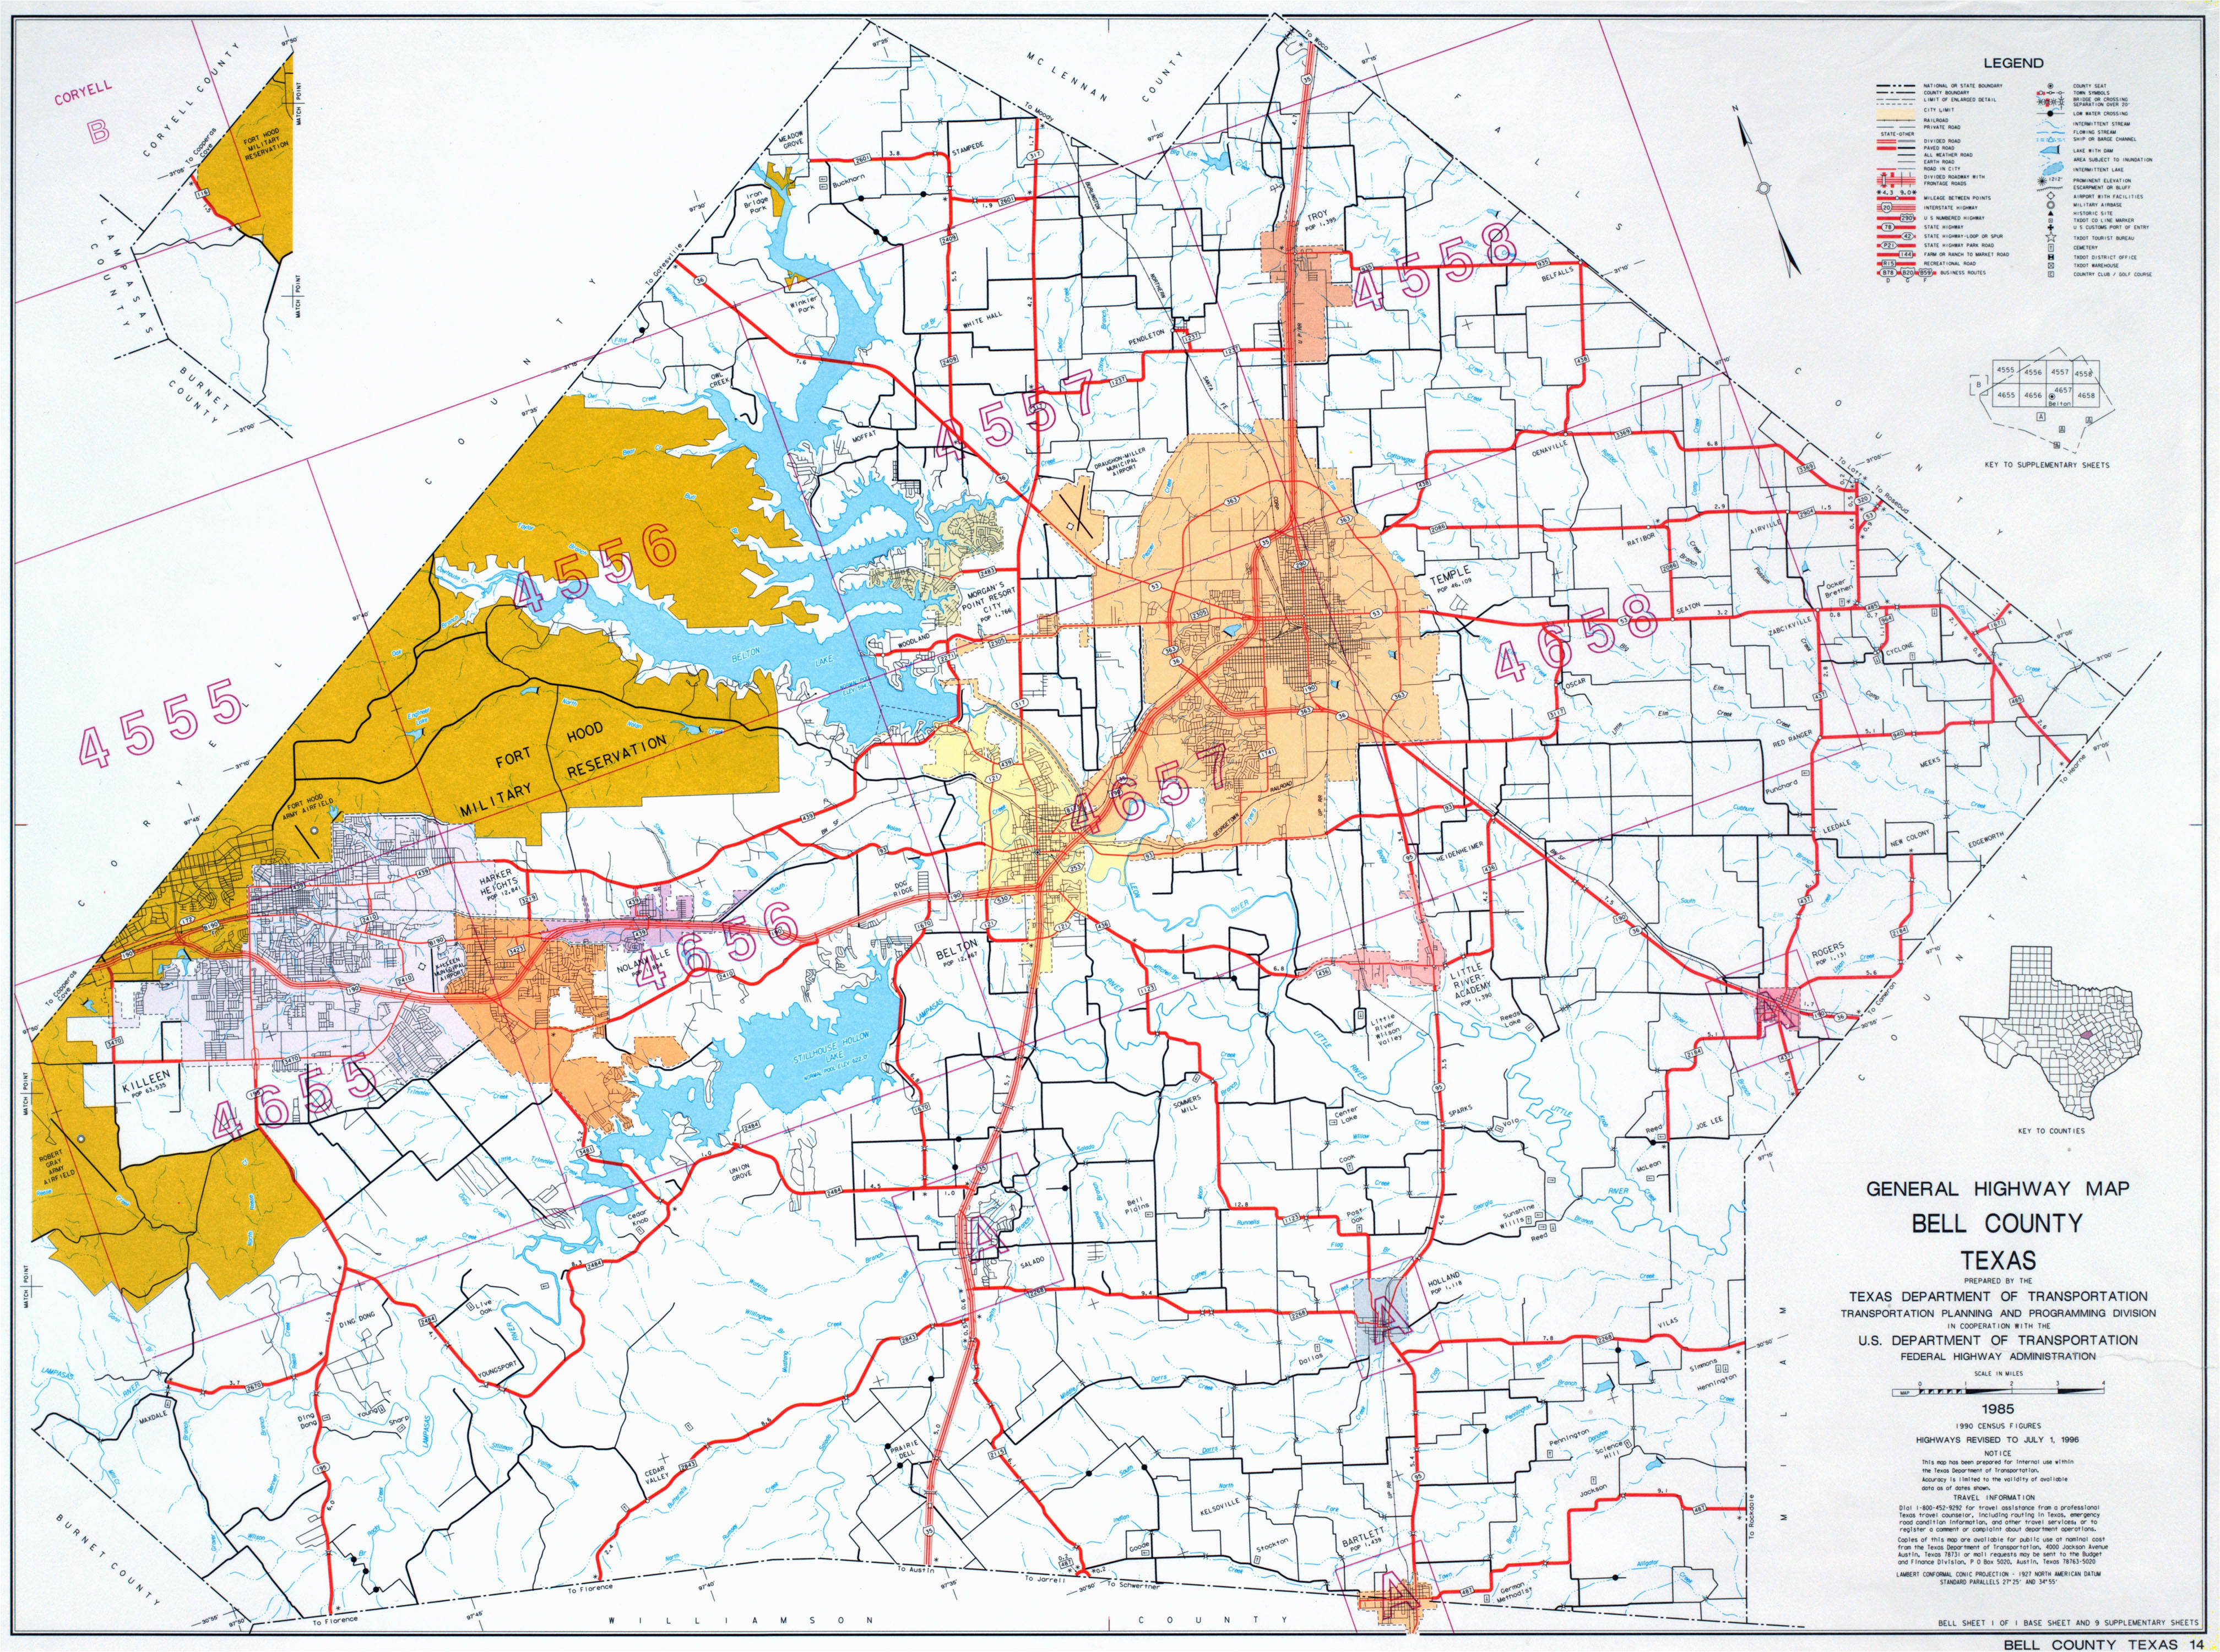 Central Texas Counties Map Texas County Highway Maps Browse Perry Castaa Eda Map Collection